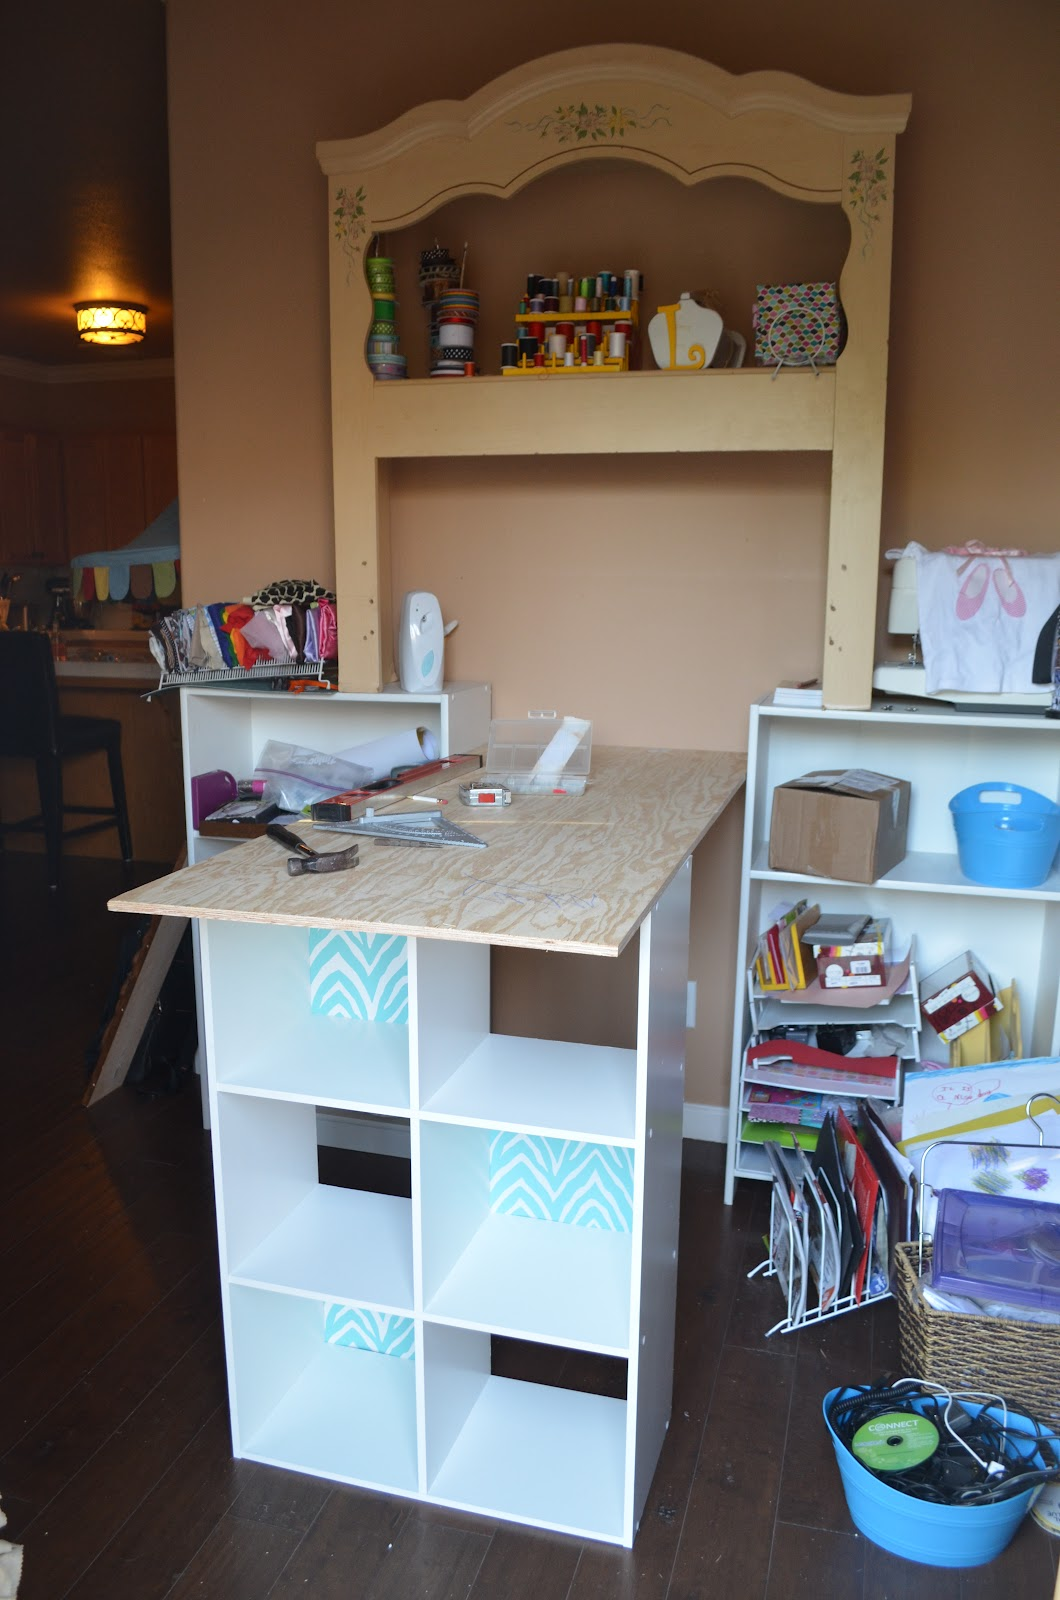 & My New Craft Space Progress |